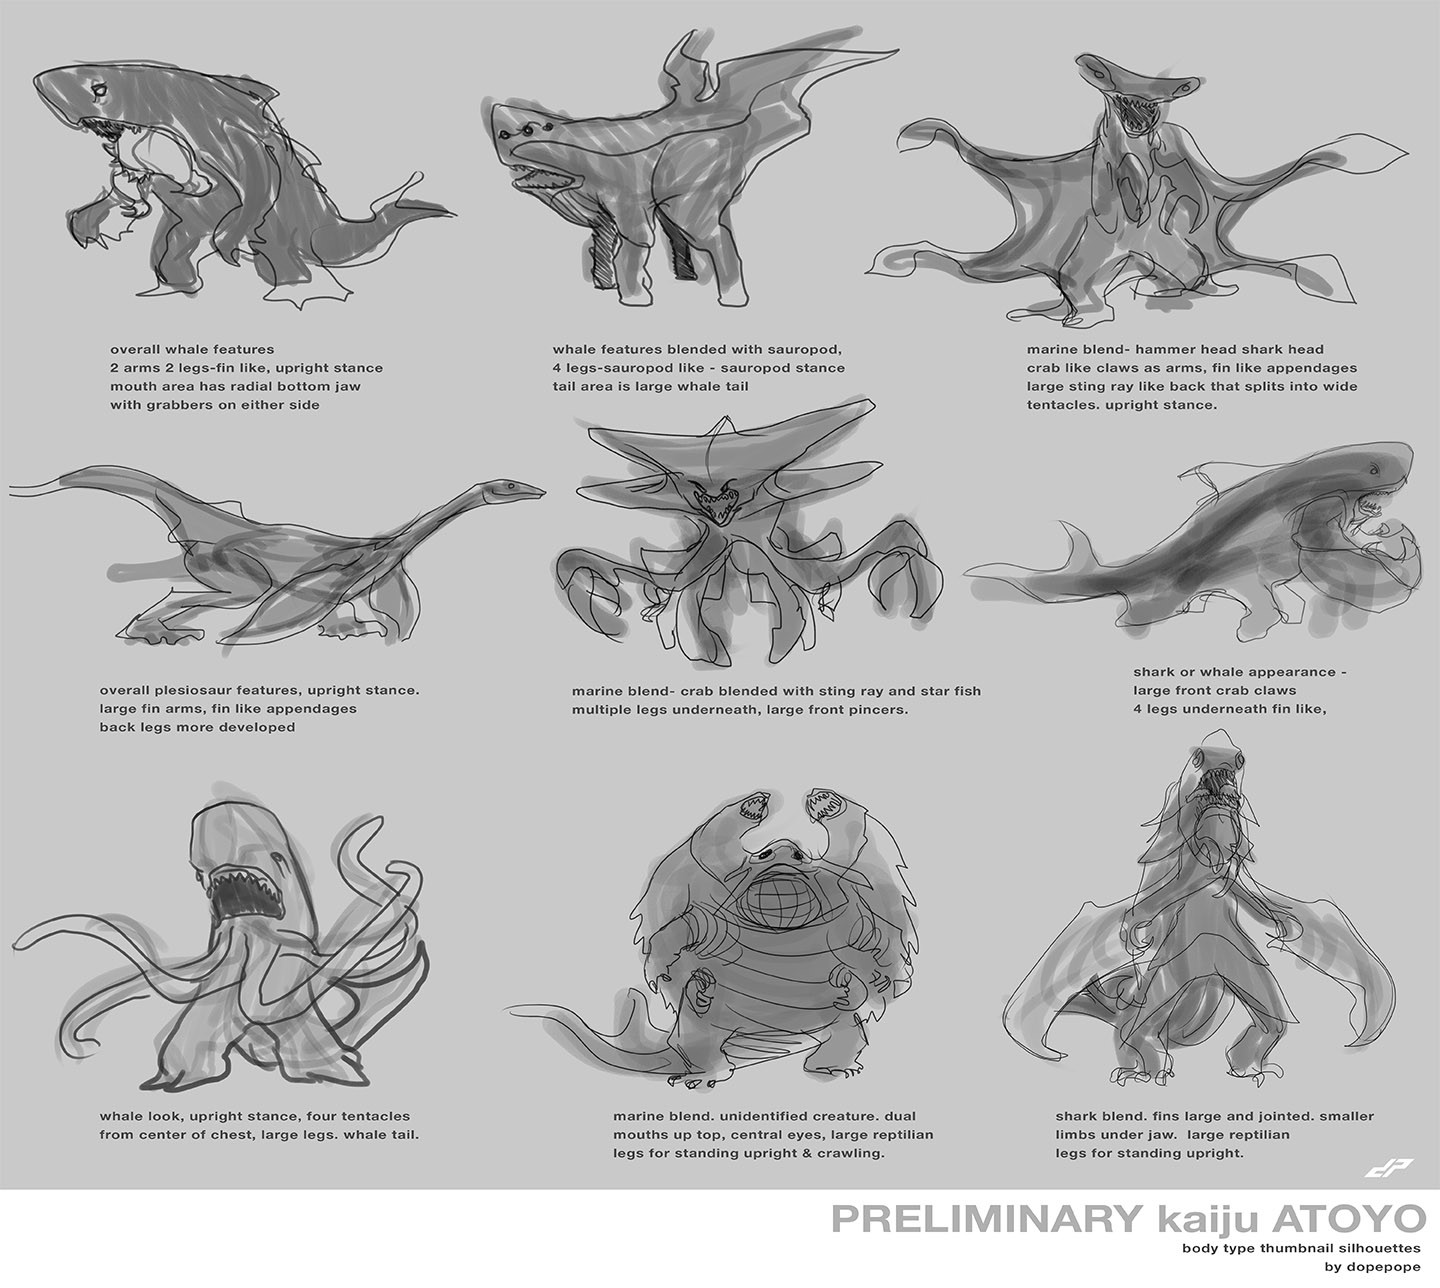 Preliminary silhouettes quickly sketched to capture an impression of a kaiju 'type' we'd want to develop. Ultimately we decided on the head of the center sketch, with the mouth of the first sketch, and the large claws of the last sketch.